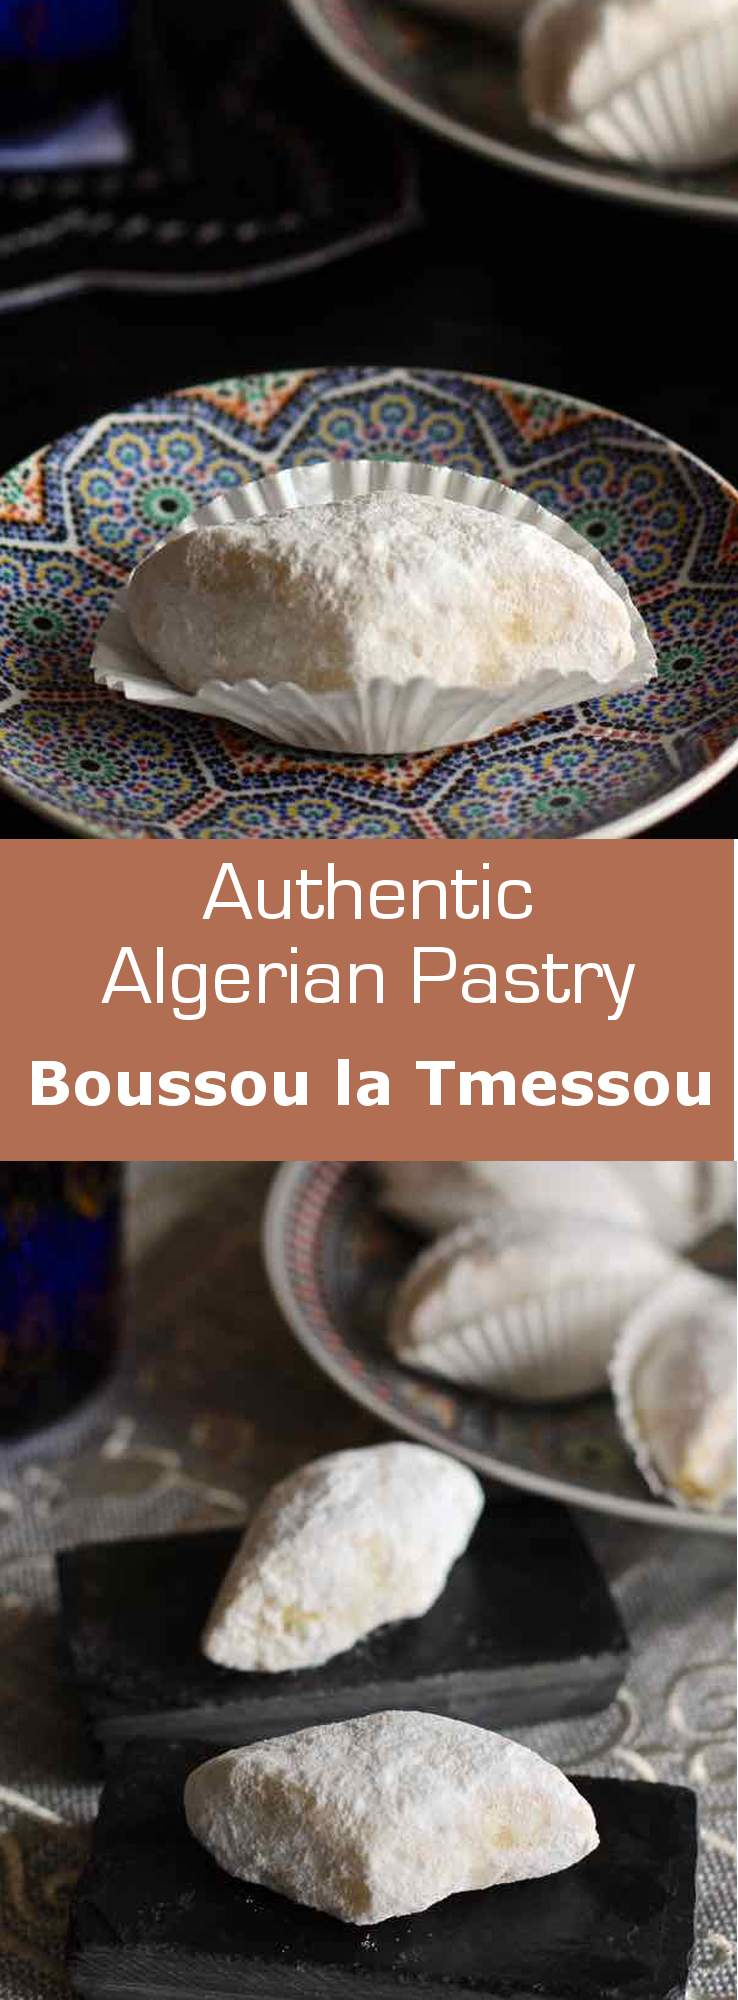 Boussou latemessou (kiss him but do not touch him) is a traditional Algerian pastry prepared with sesame seeds, lemon and orange blossom water. #algeria #pastry #196flavors